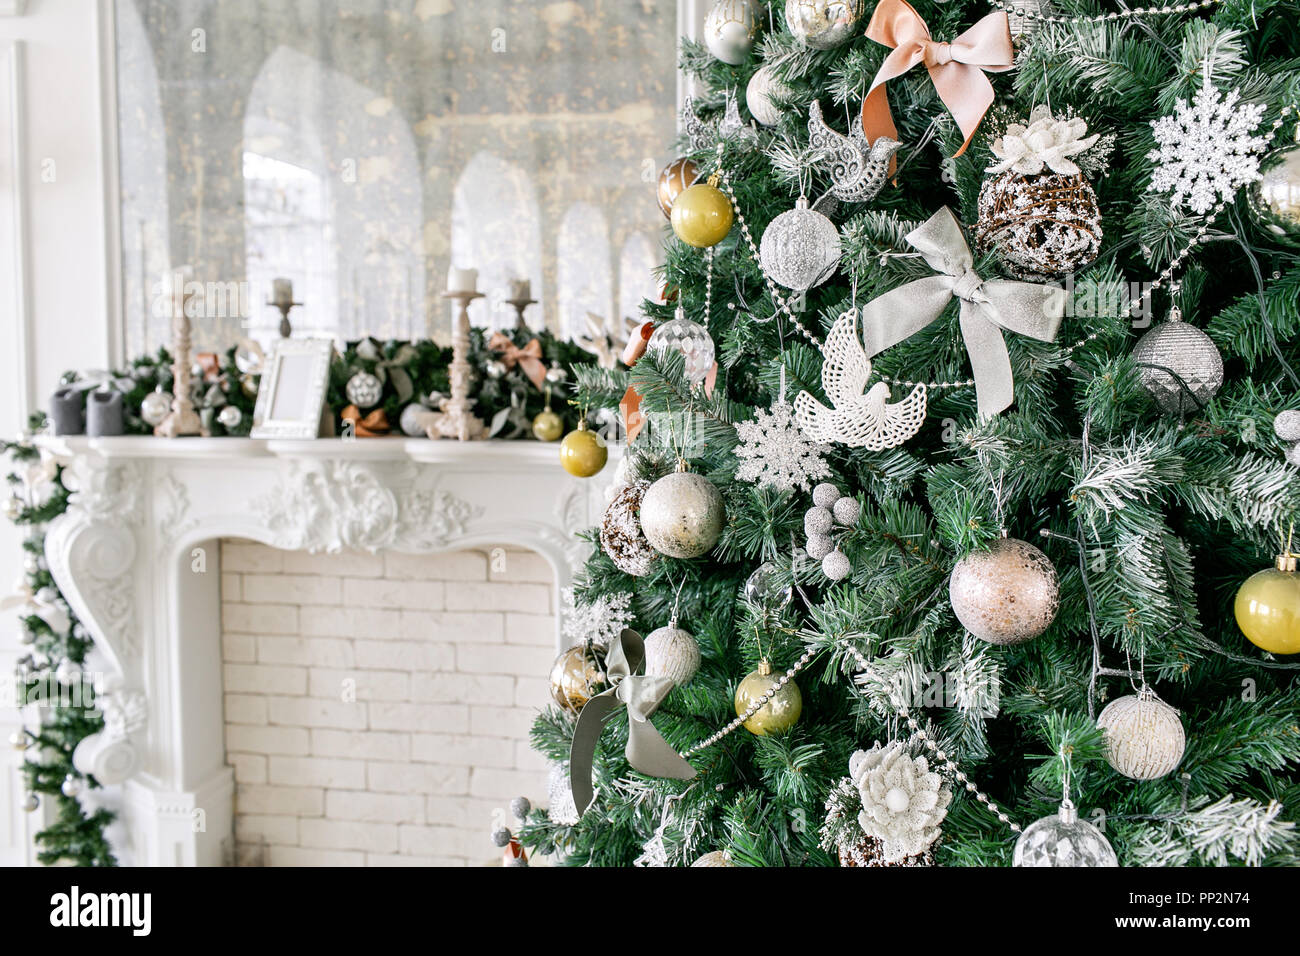 White Fireplace Decorated With Candles And Fir Branches Decorated Christmas Tree Classic Apartments Morning In Hotel Stock Photo Alamy